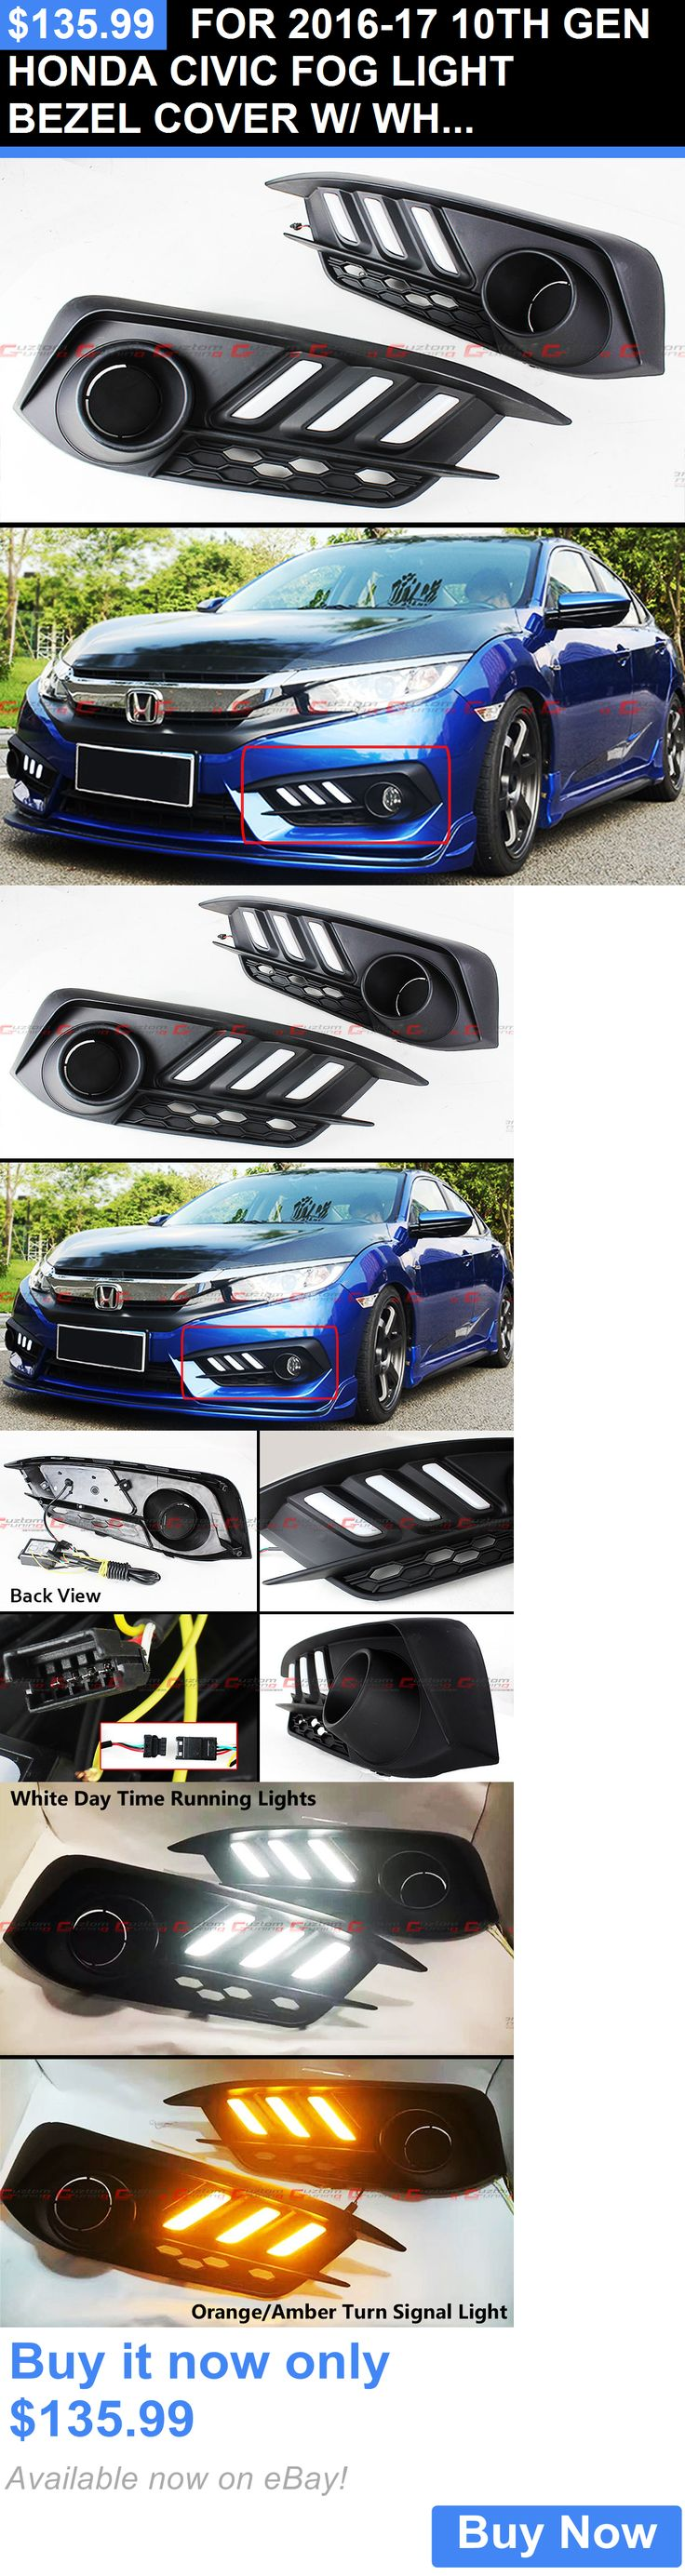 Motors Parts And Accessories: For 2016-17 10Th Gen Honda Civic Fog Light Bezel Cover W/ White And Amber Led Drl BUY IT NOW ONLY: $135.99